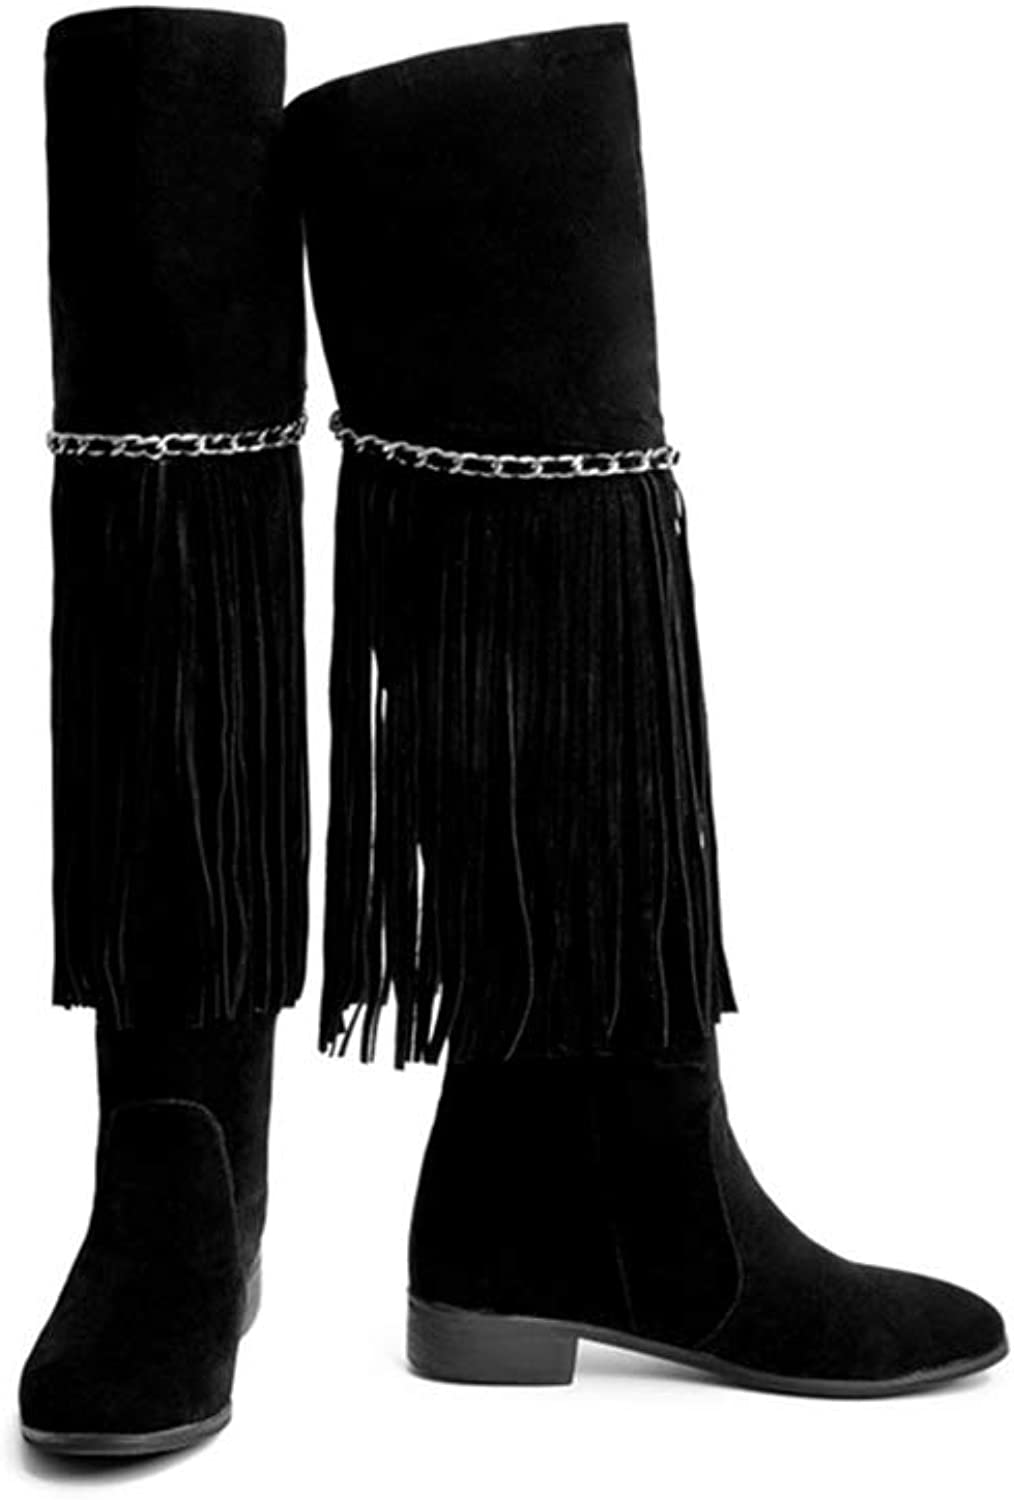 Over Knee High Boots Flat Round Toe Slip-On Flat shoes